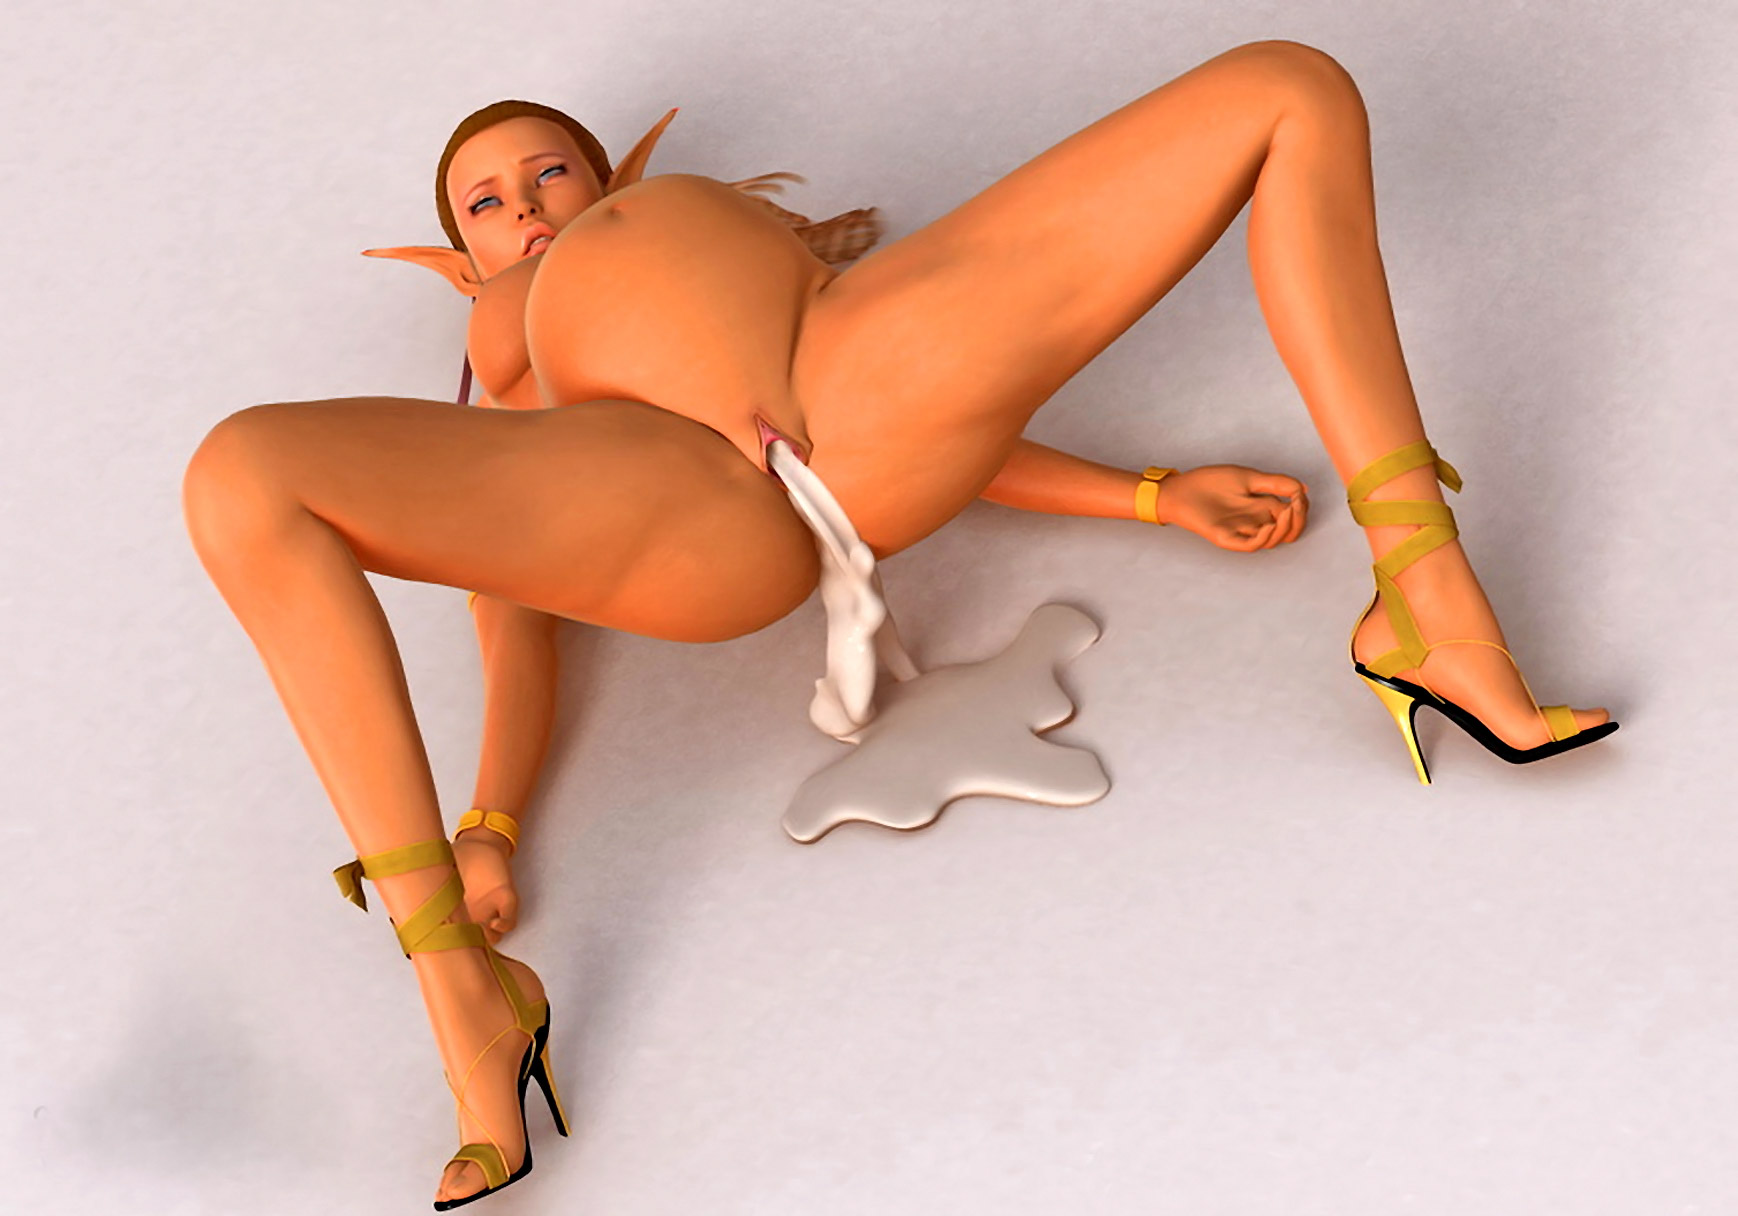 Pregnant elf getting fucked sexy video